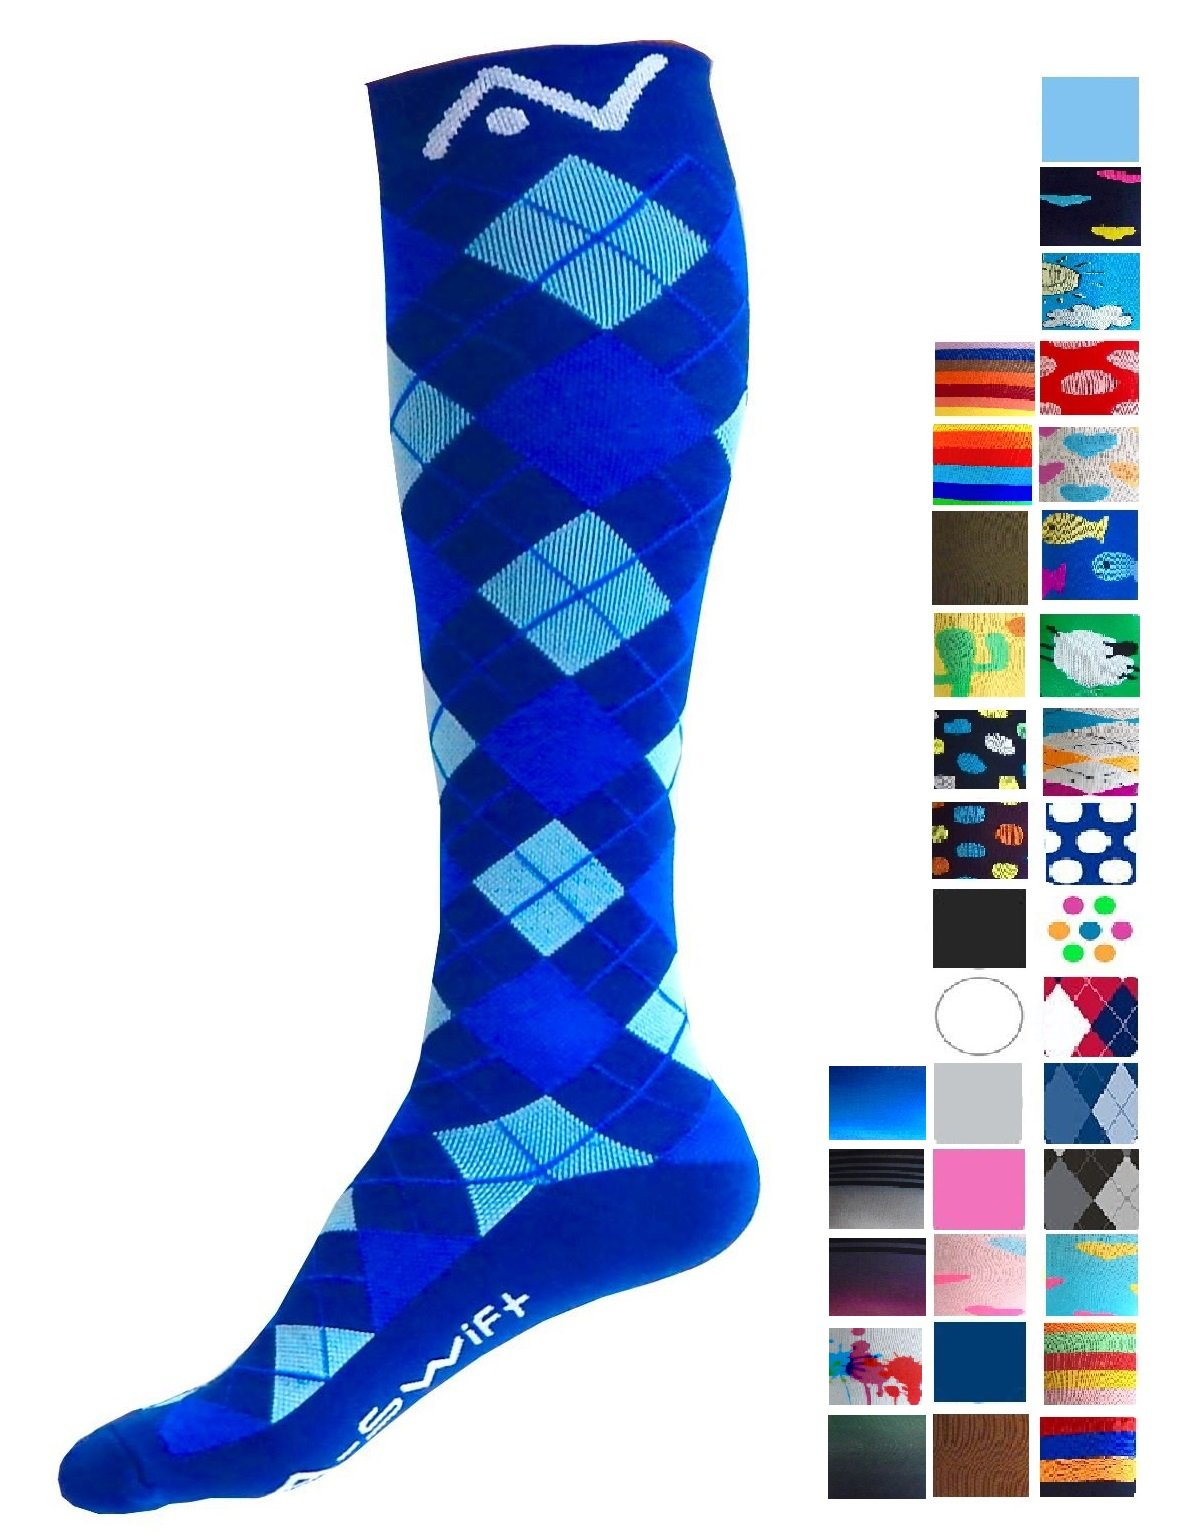 A-Swift Compression Socks (1 pair) for Women & Men by Best For Running, Athletic Sports, Crossfit, Flight Travel - Suits Nurses, Maternity Pregnancy - Below Knee High (Blue Argyle, Small)